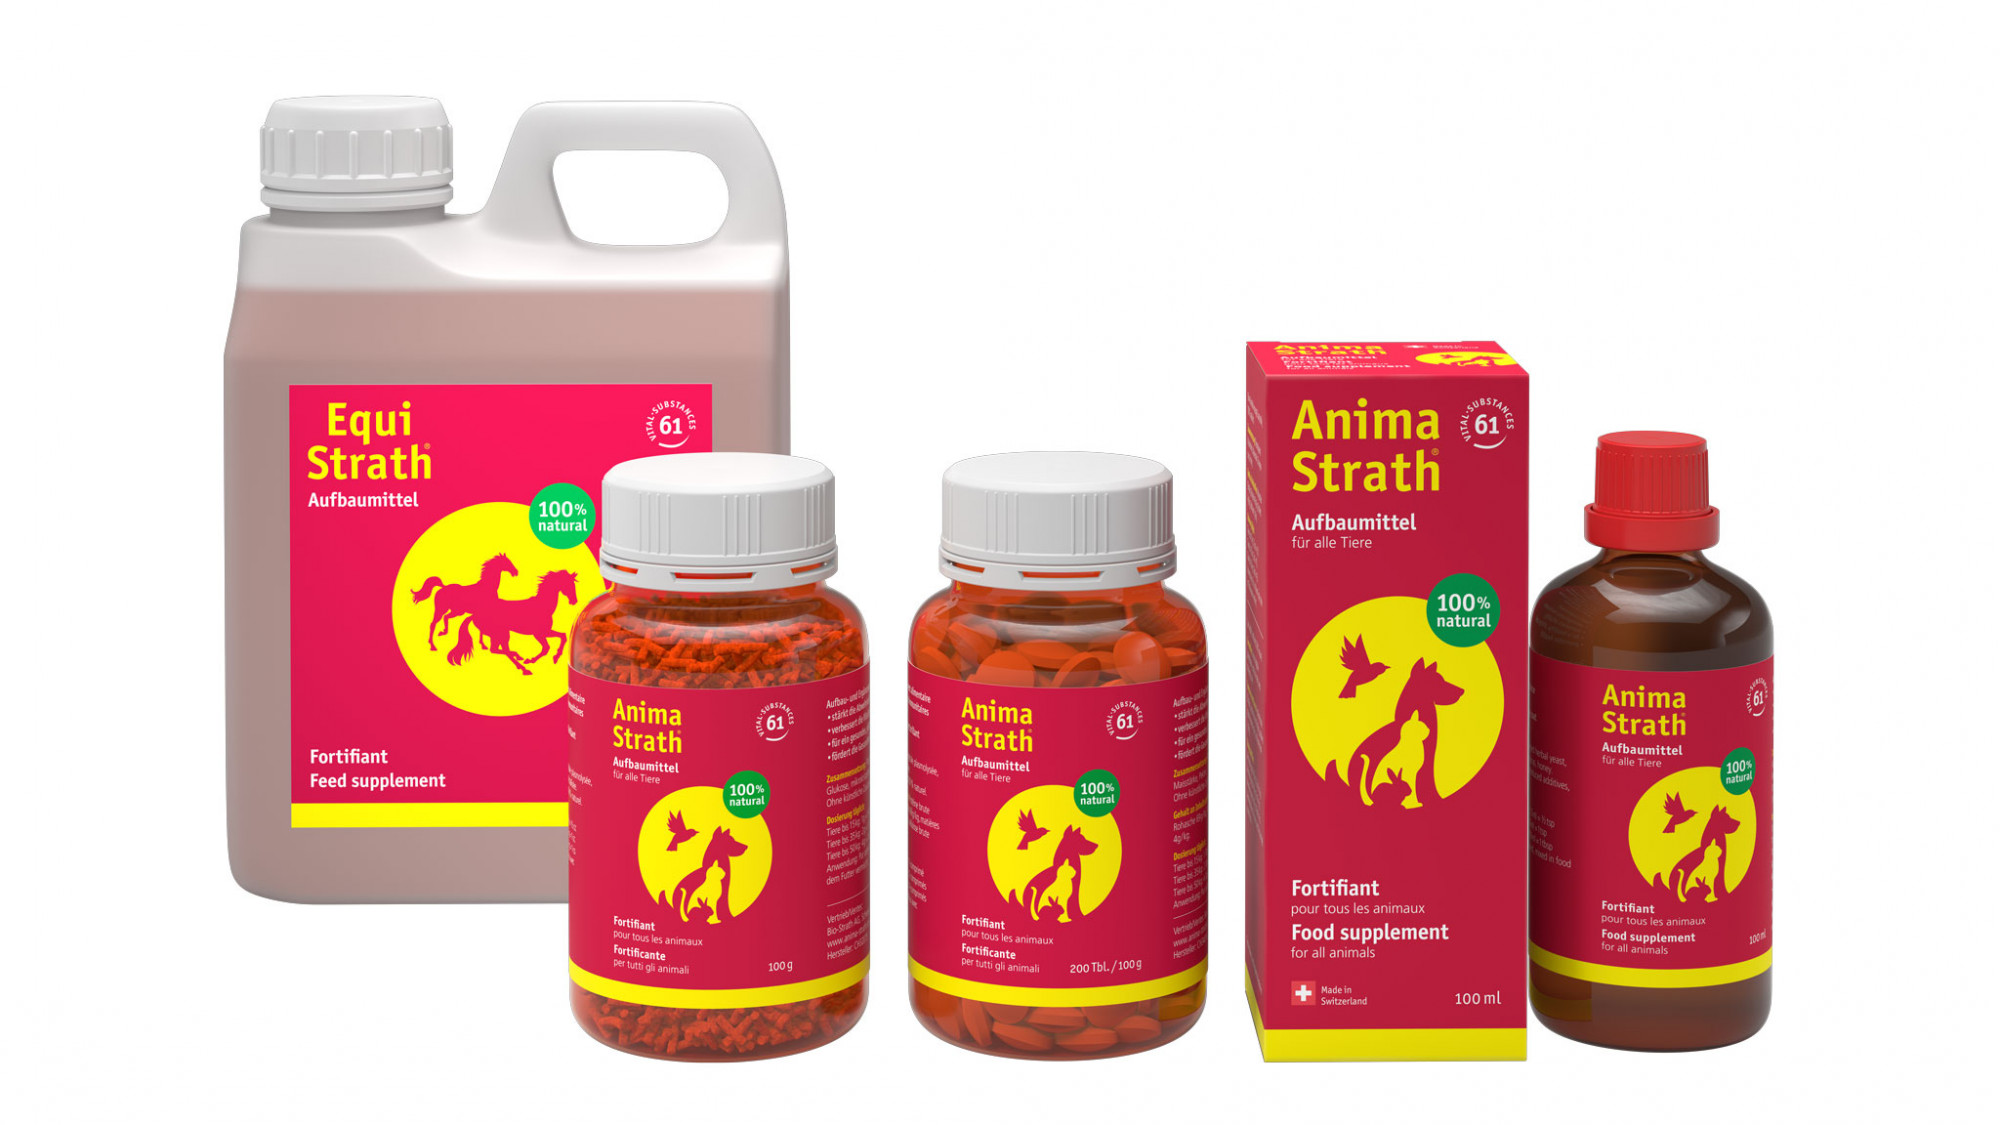 Anima-Strath products